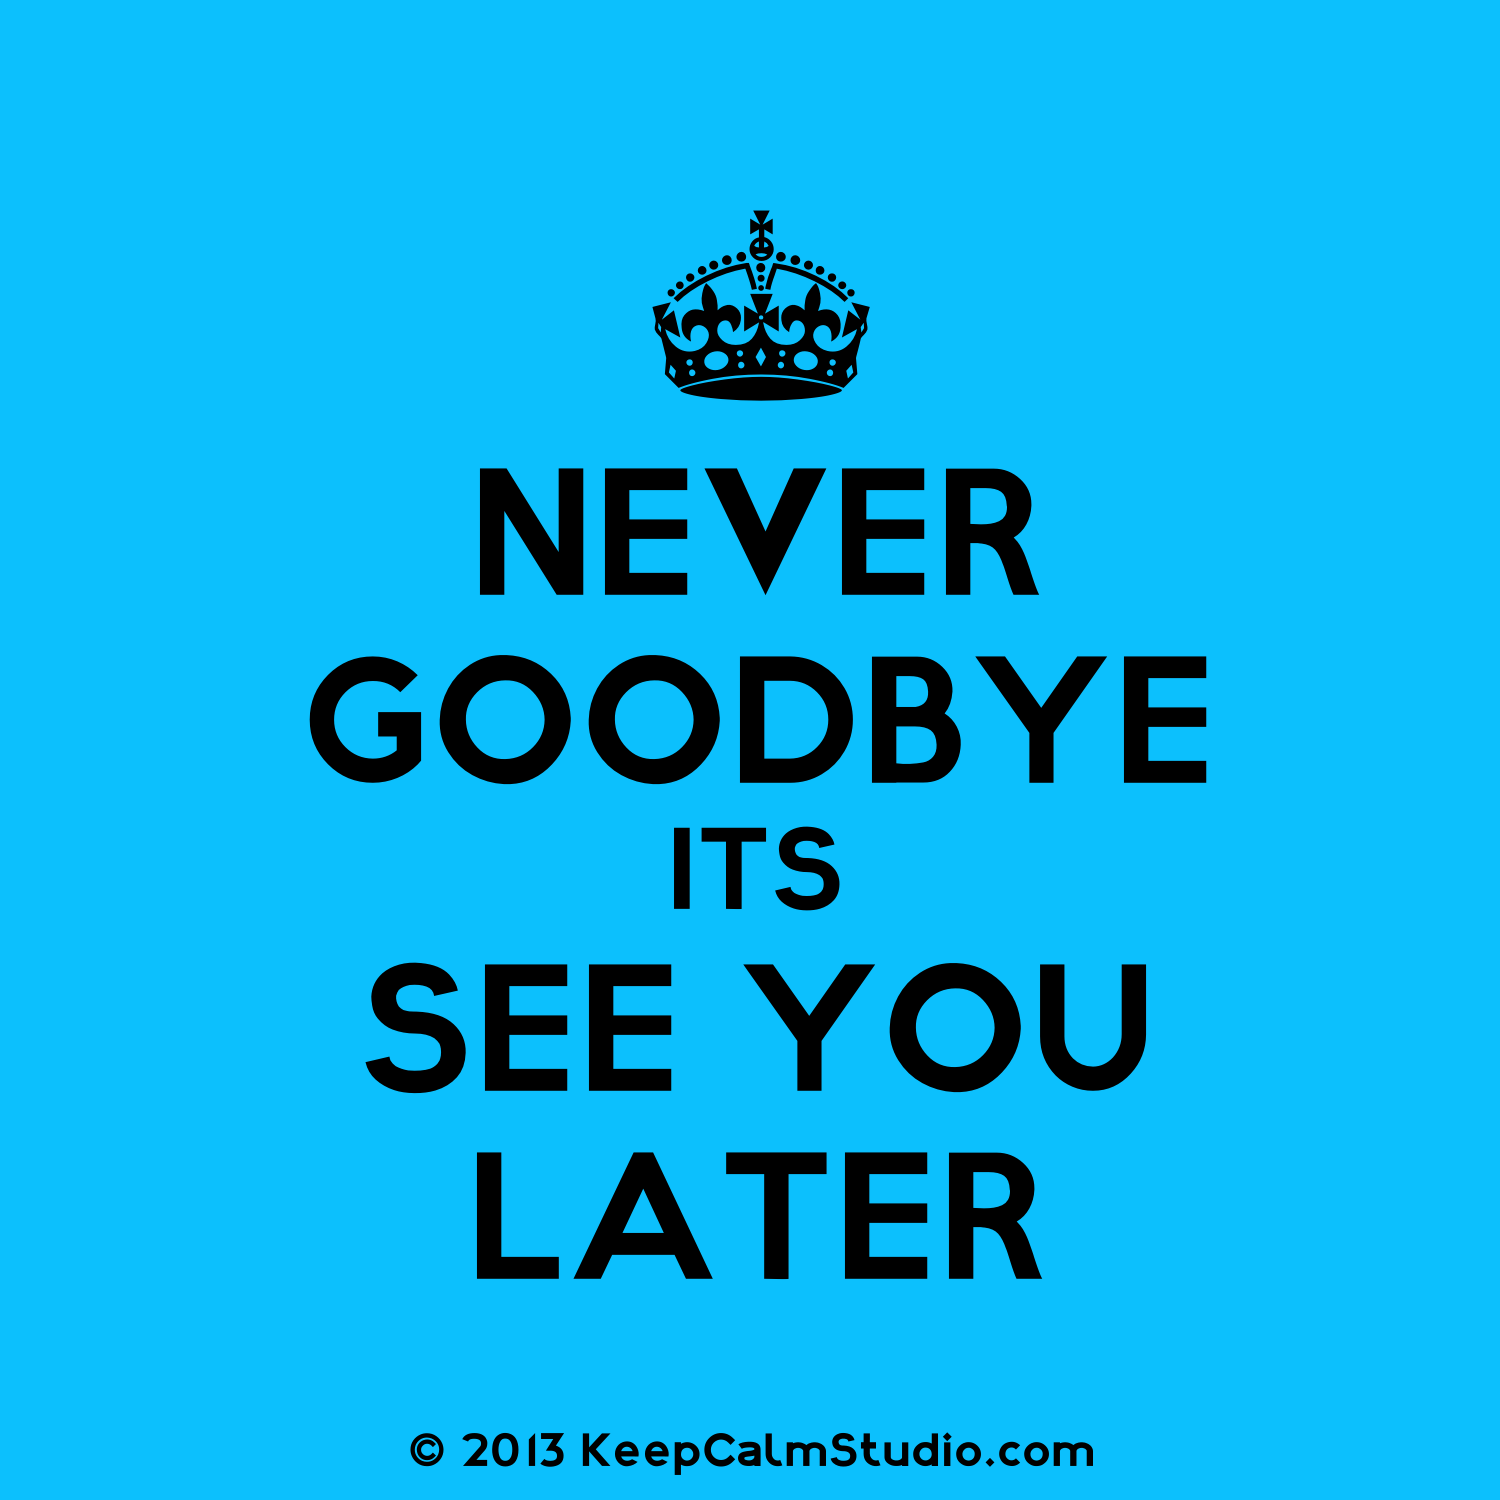 Farewell clipart free download.